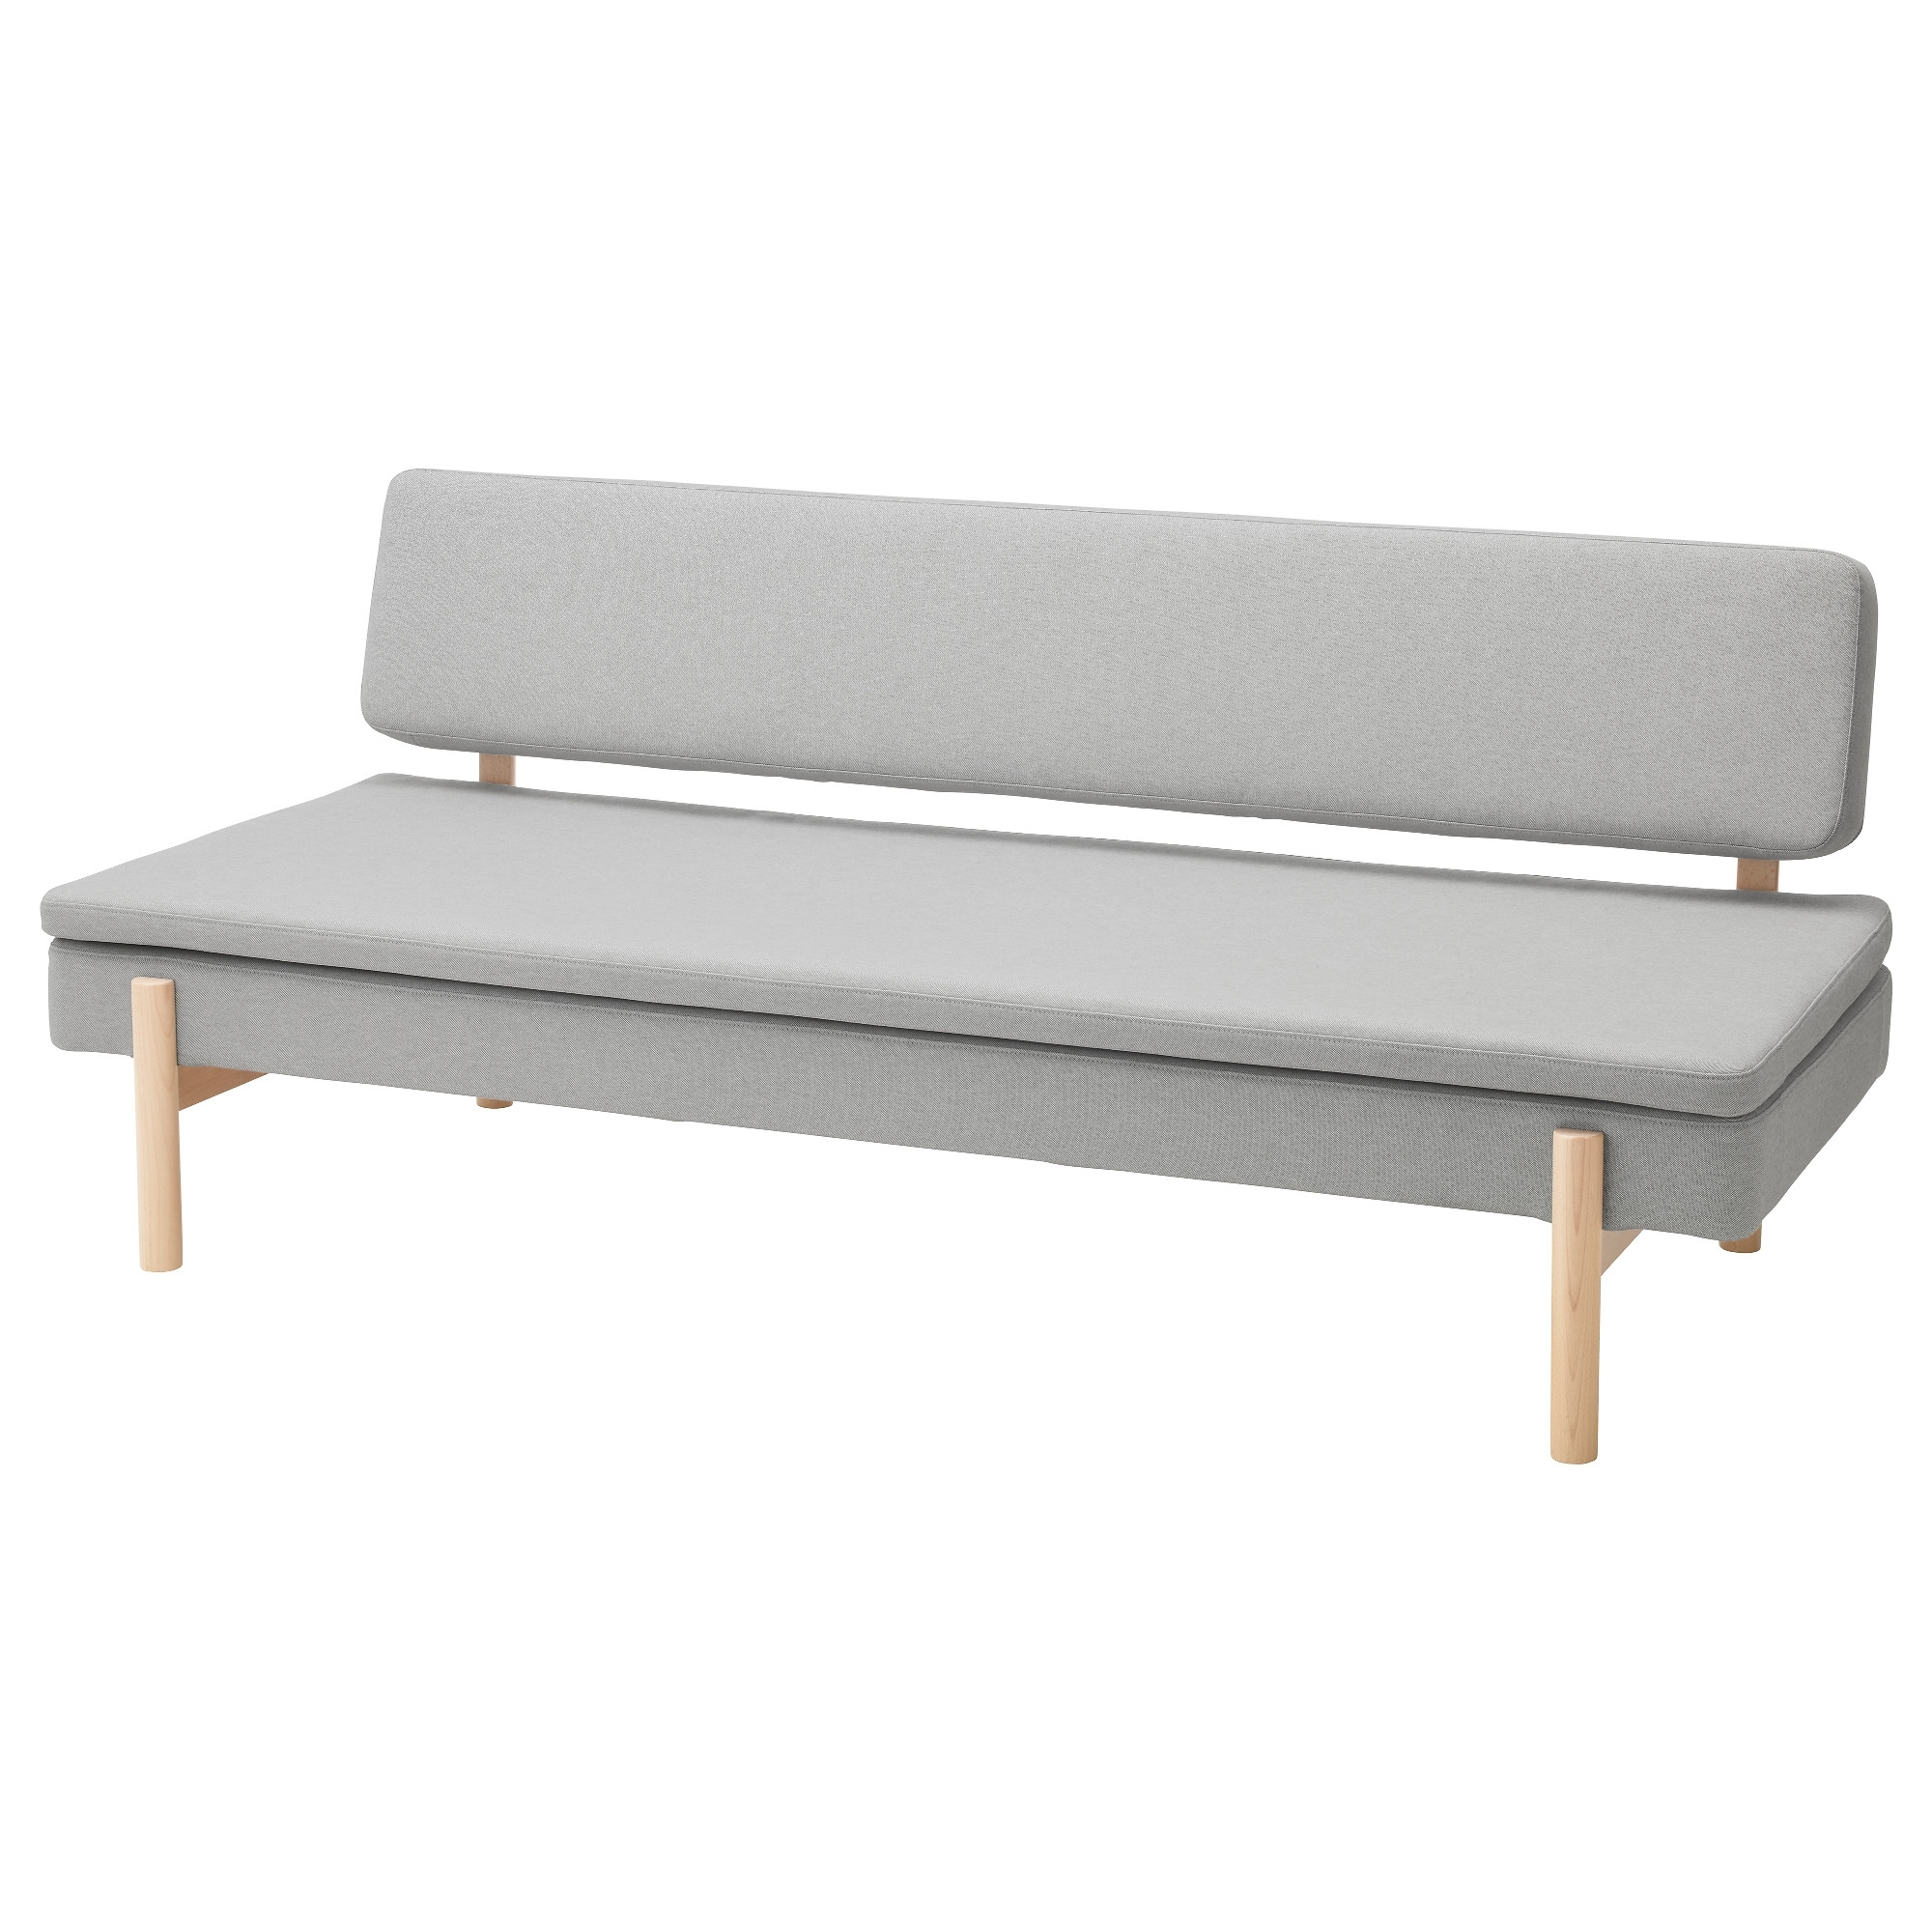 Ypperlig 3-Seat Sofa Bed Ramna Light Grey - Ikea pertaining to Ikea Small Sofas